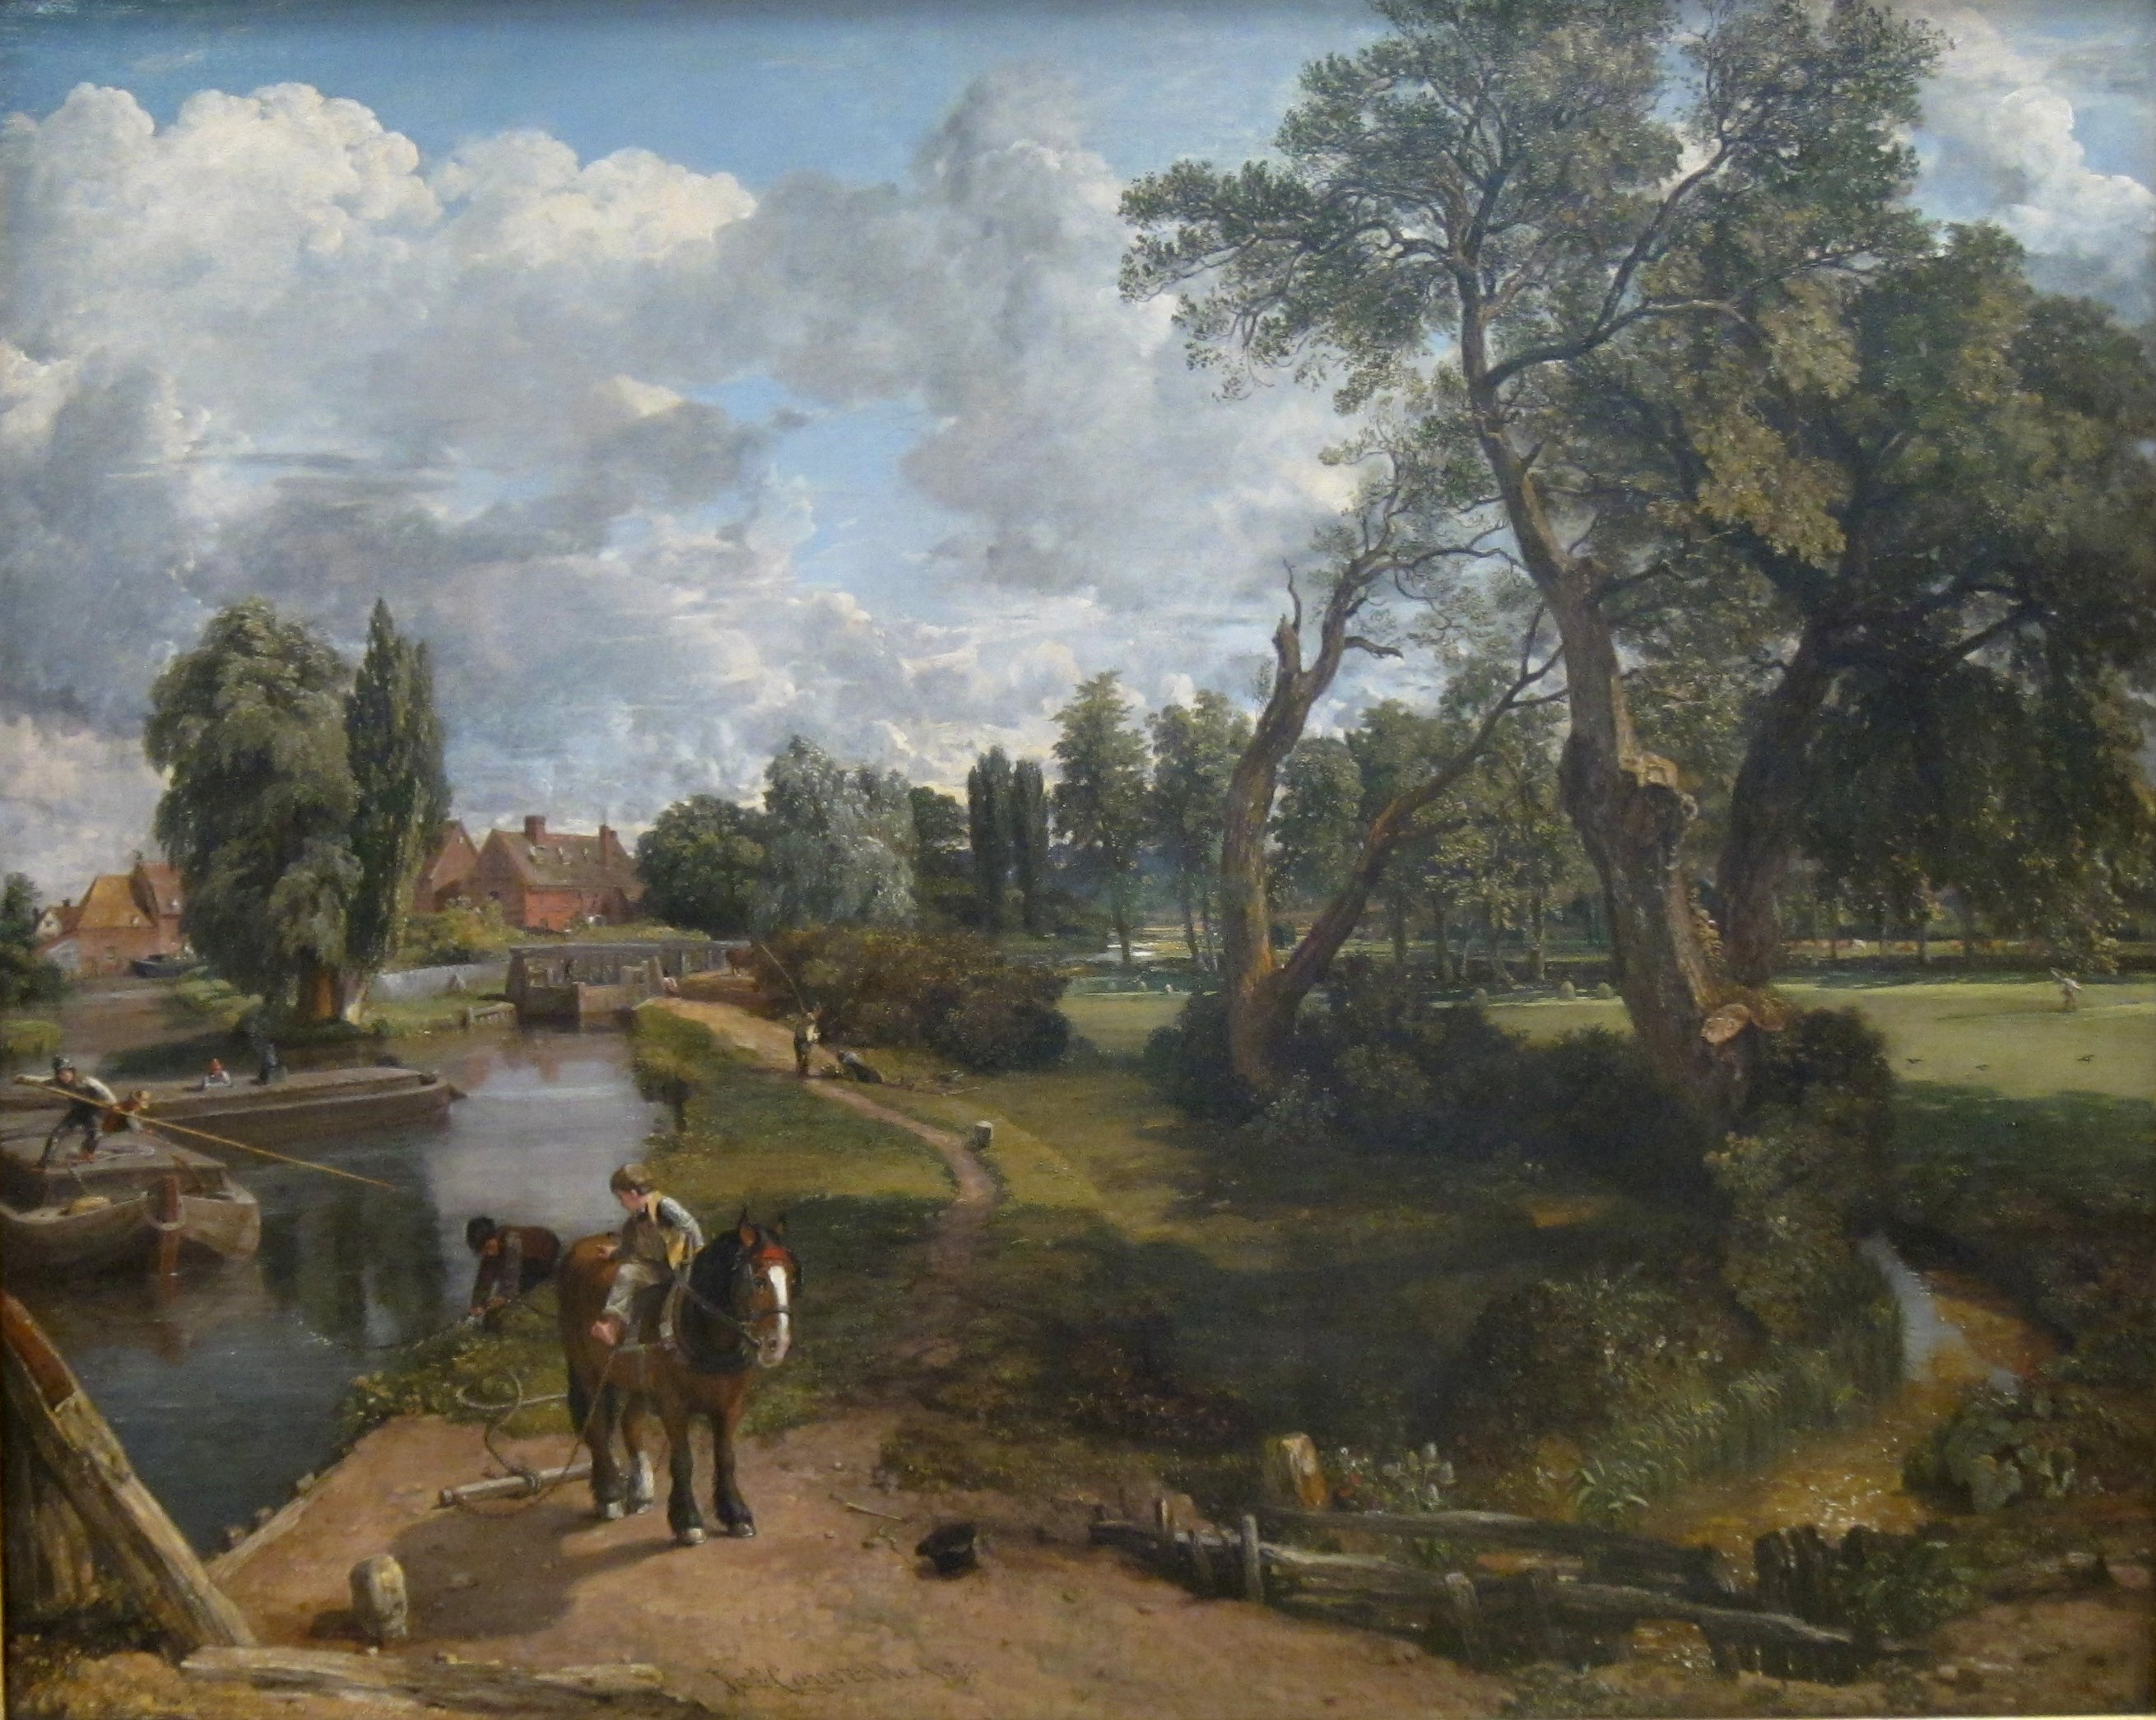 Constable and Turner